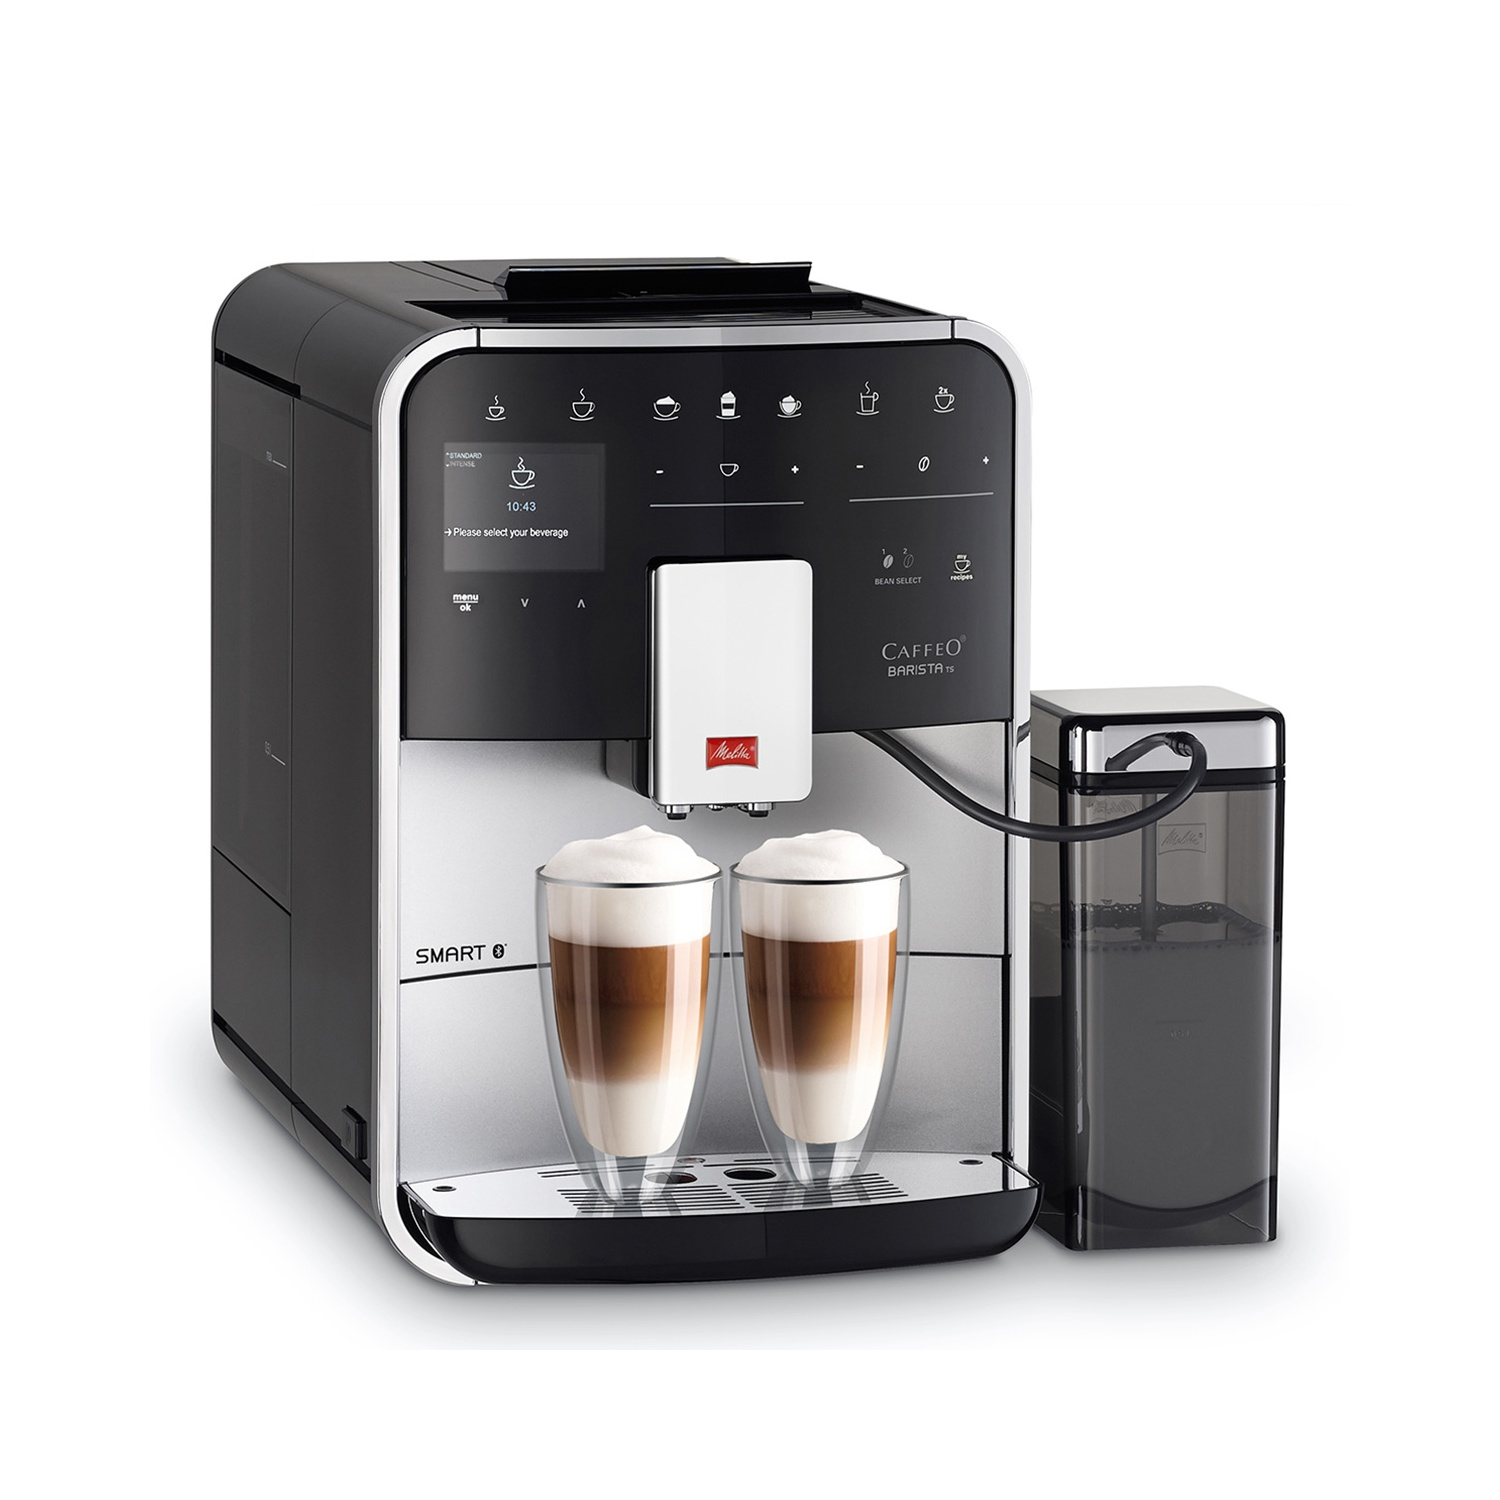 ekspres do kawy melitta f85 0 101 caffeo barista ts smart srebrny gratis 3kg kawy. Black Bedroom Furniture Sets. Home Design Ideas